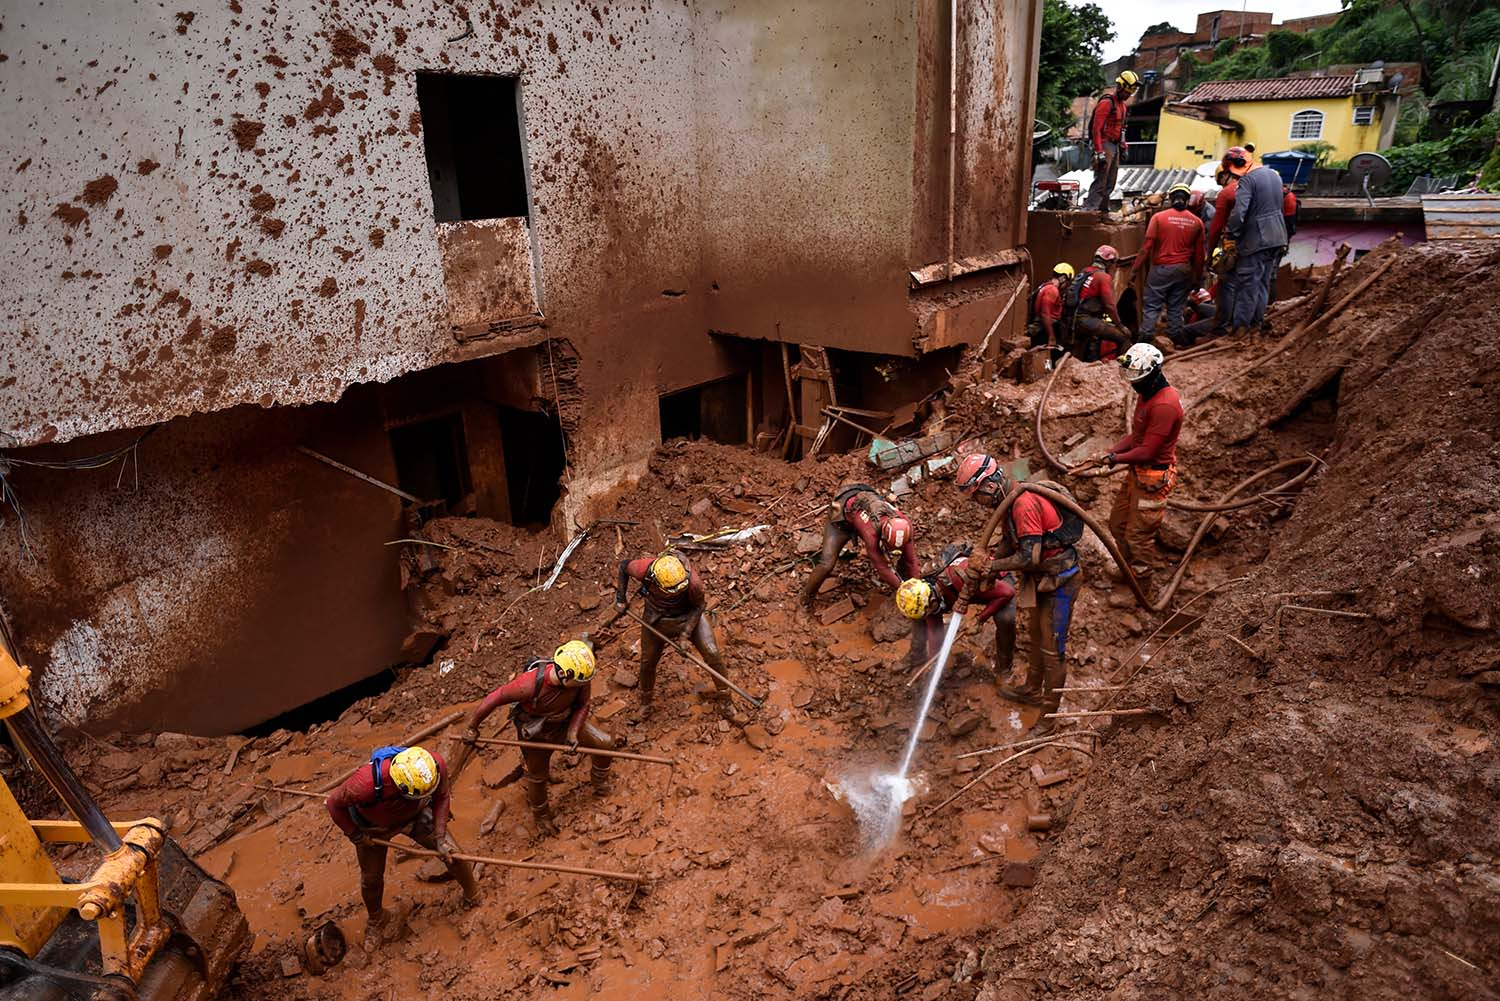 Firefighters search for missing people using a hydraulic dismantling technique, which uses water to disperse mud, after a landslide in Vila Bernadete, Brazil, on Jan. 26. A landslide buried several houses in Vila Bernadete, leaving four dead and seven missing. DOUGLAS MAGNO/AFP via Getty Images